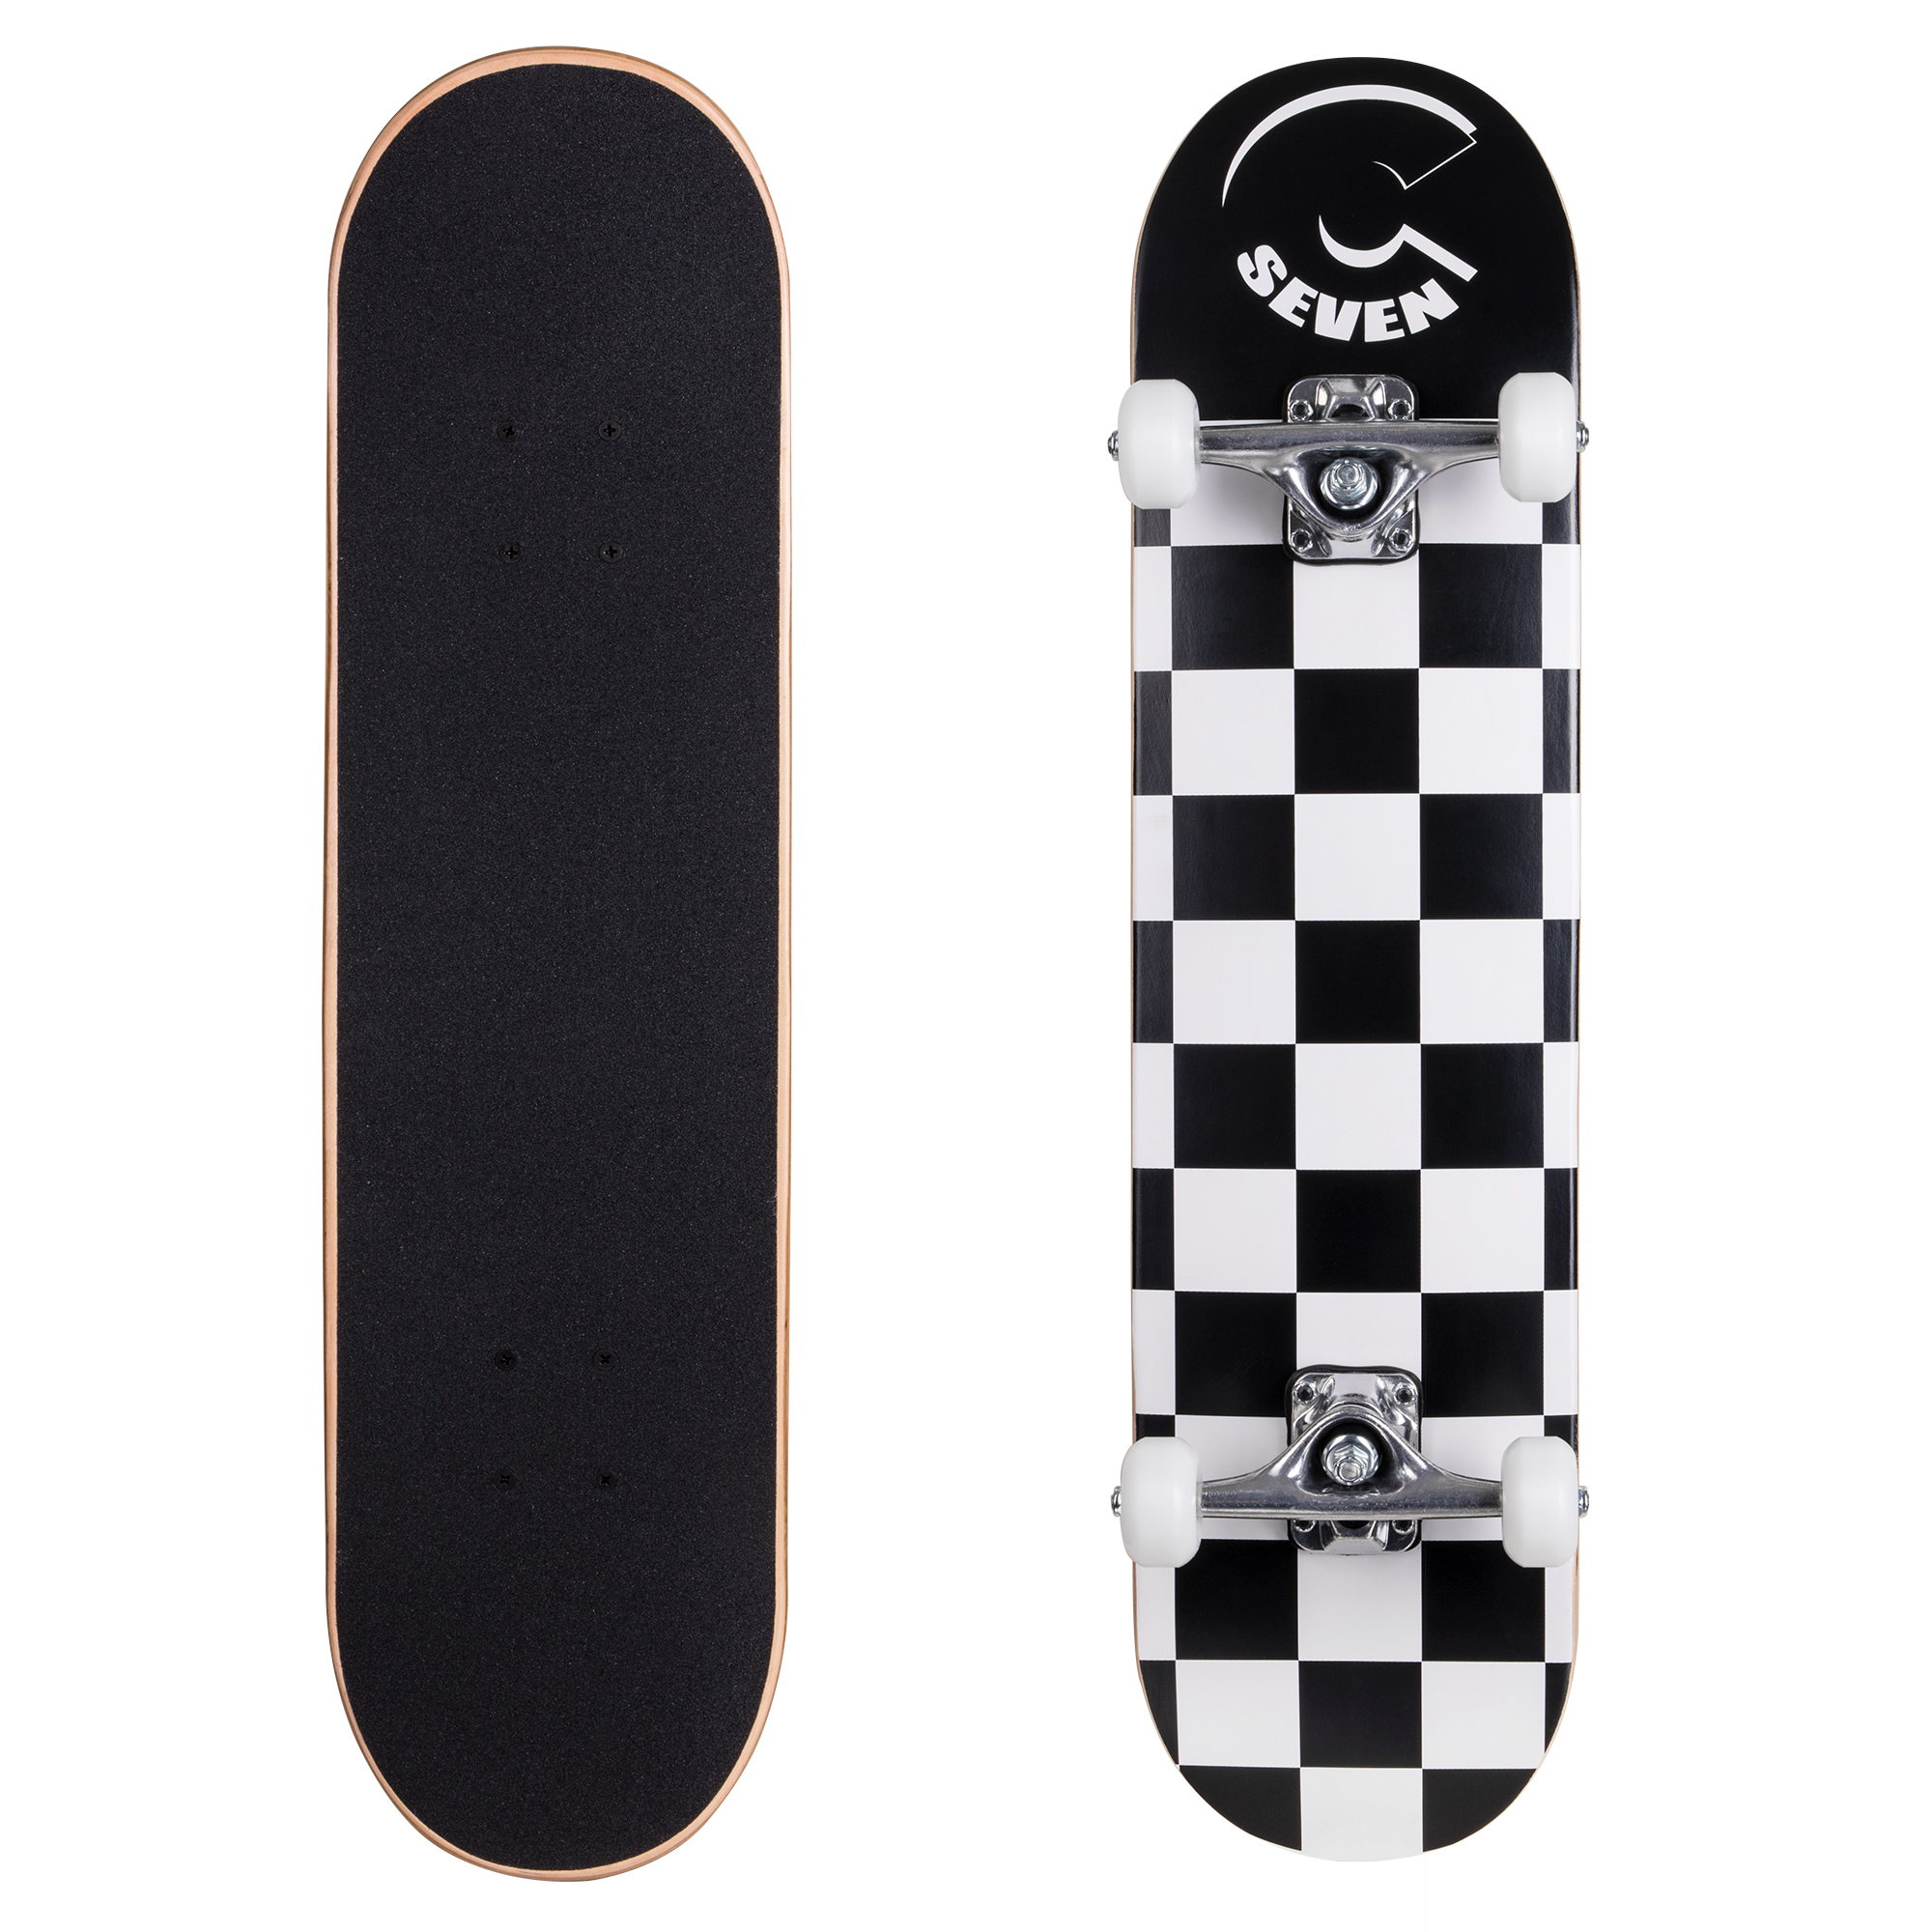 Cal 7 Complete Skateboard, 7.5 x 31 Inch Maple Deck, Popsicle Double Kicktail, Perfect for All Skate Styles (Checkerboard)